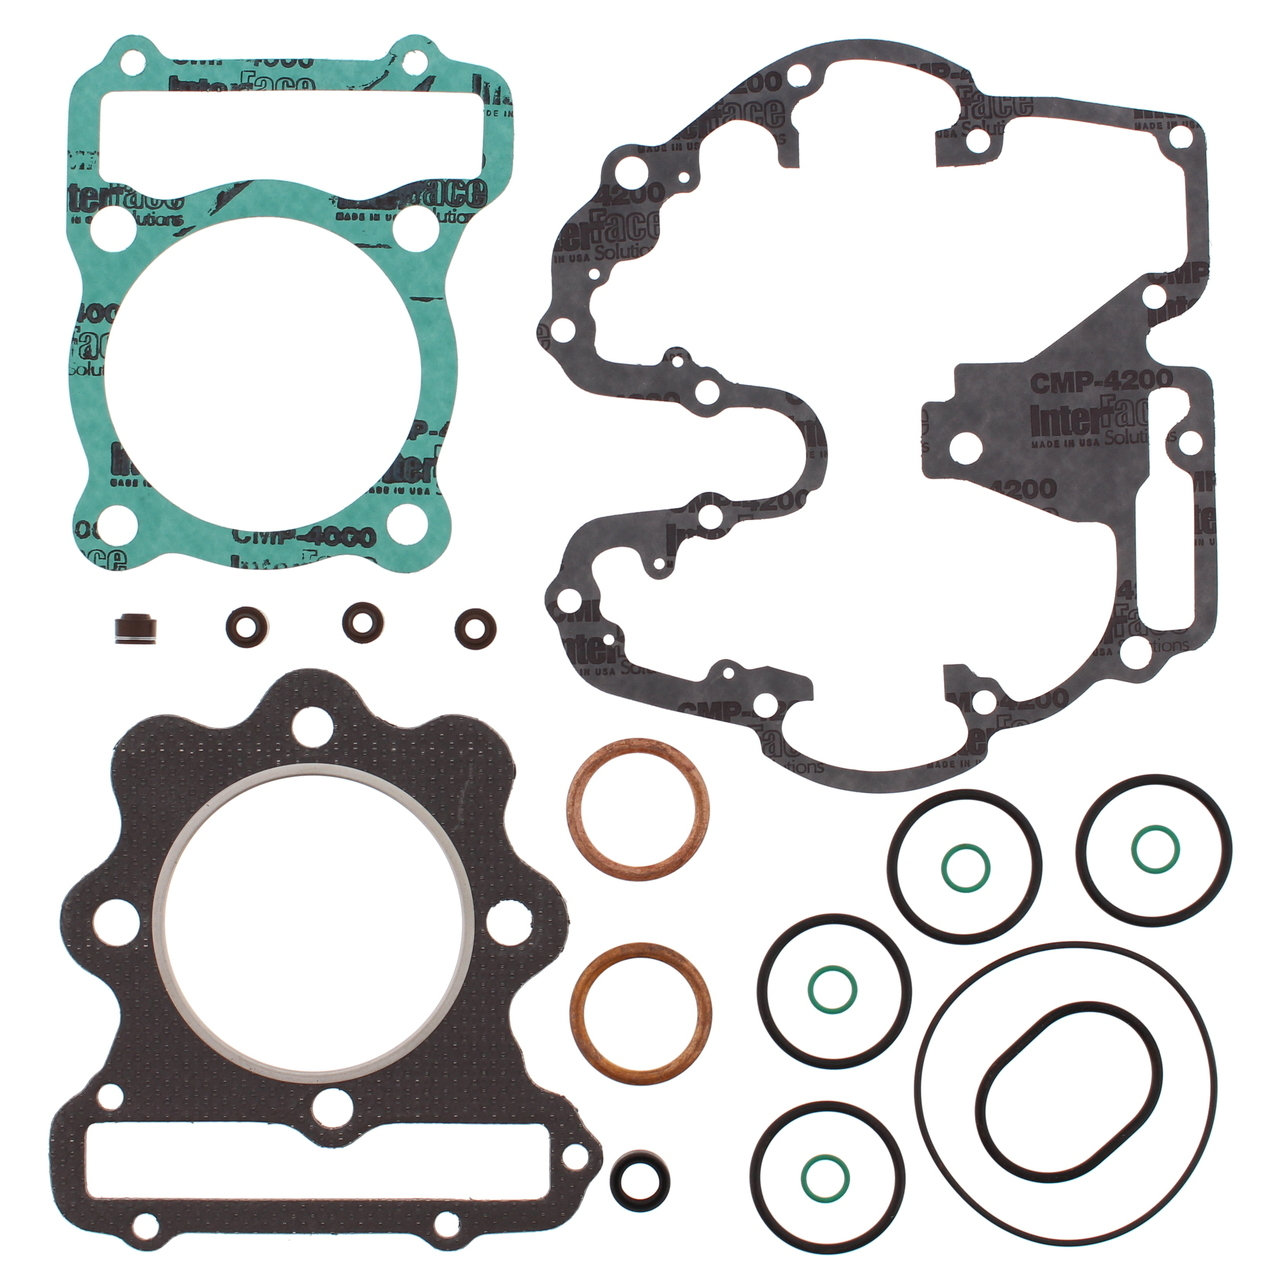 Top End Gasket Kit Honda XR250R 250cc 86 87 88 89 90 91 92